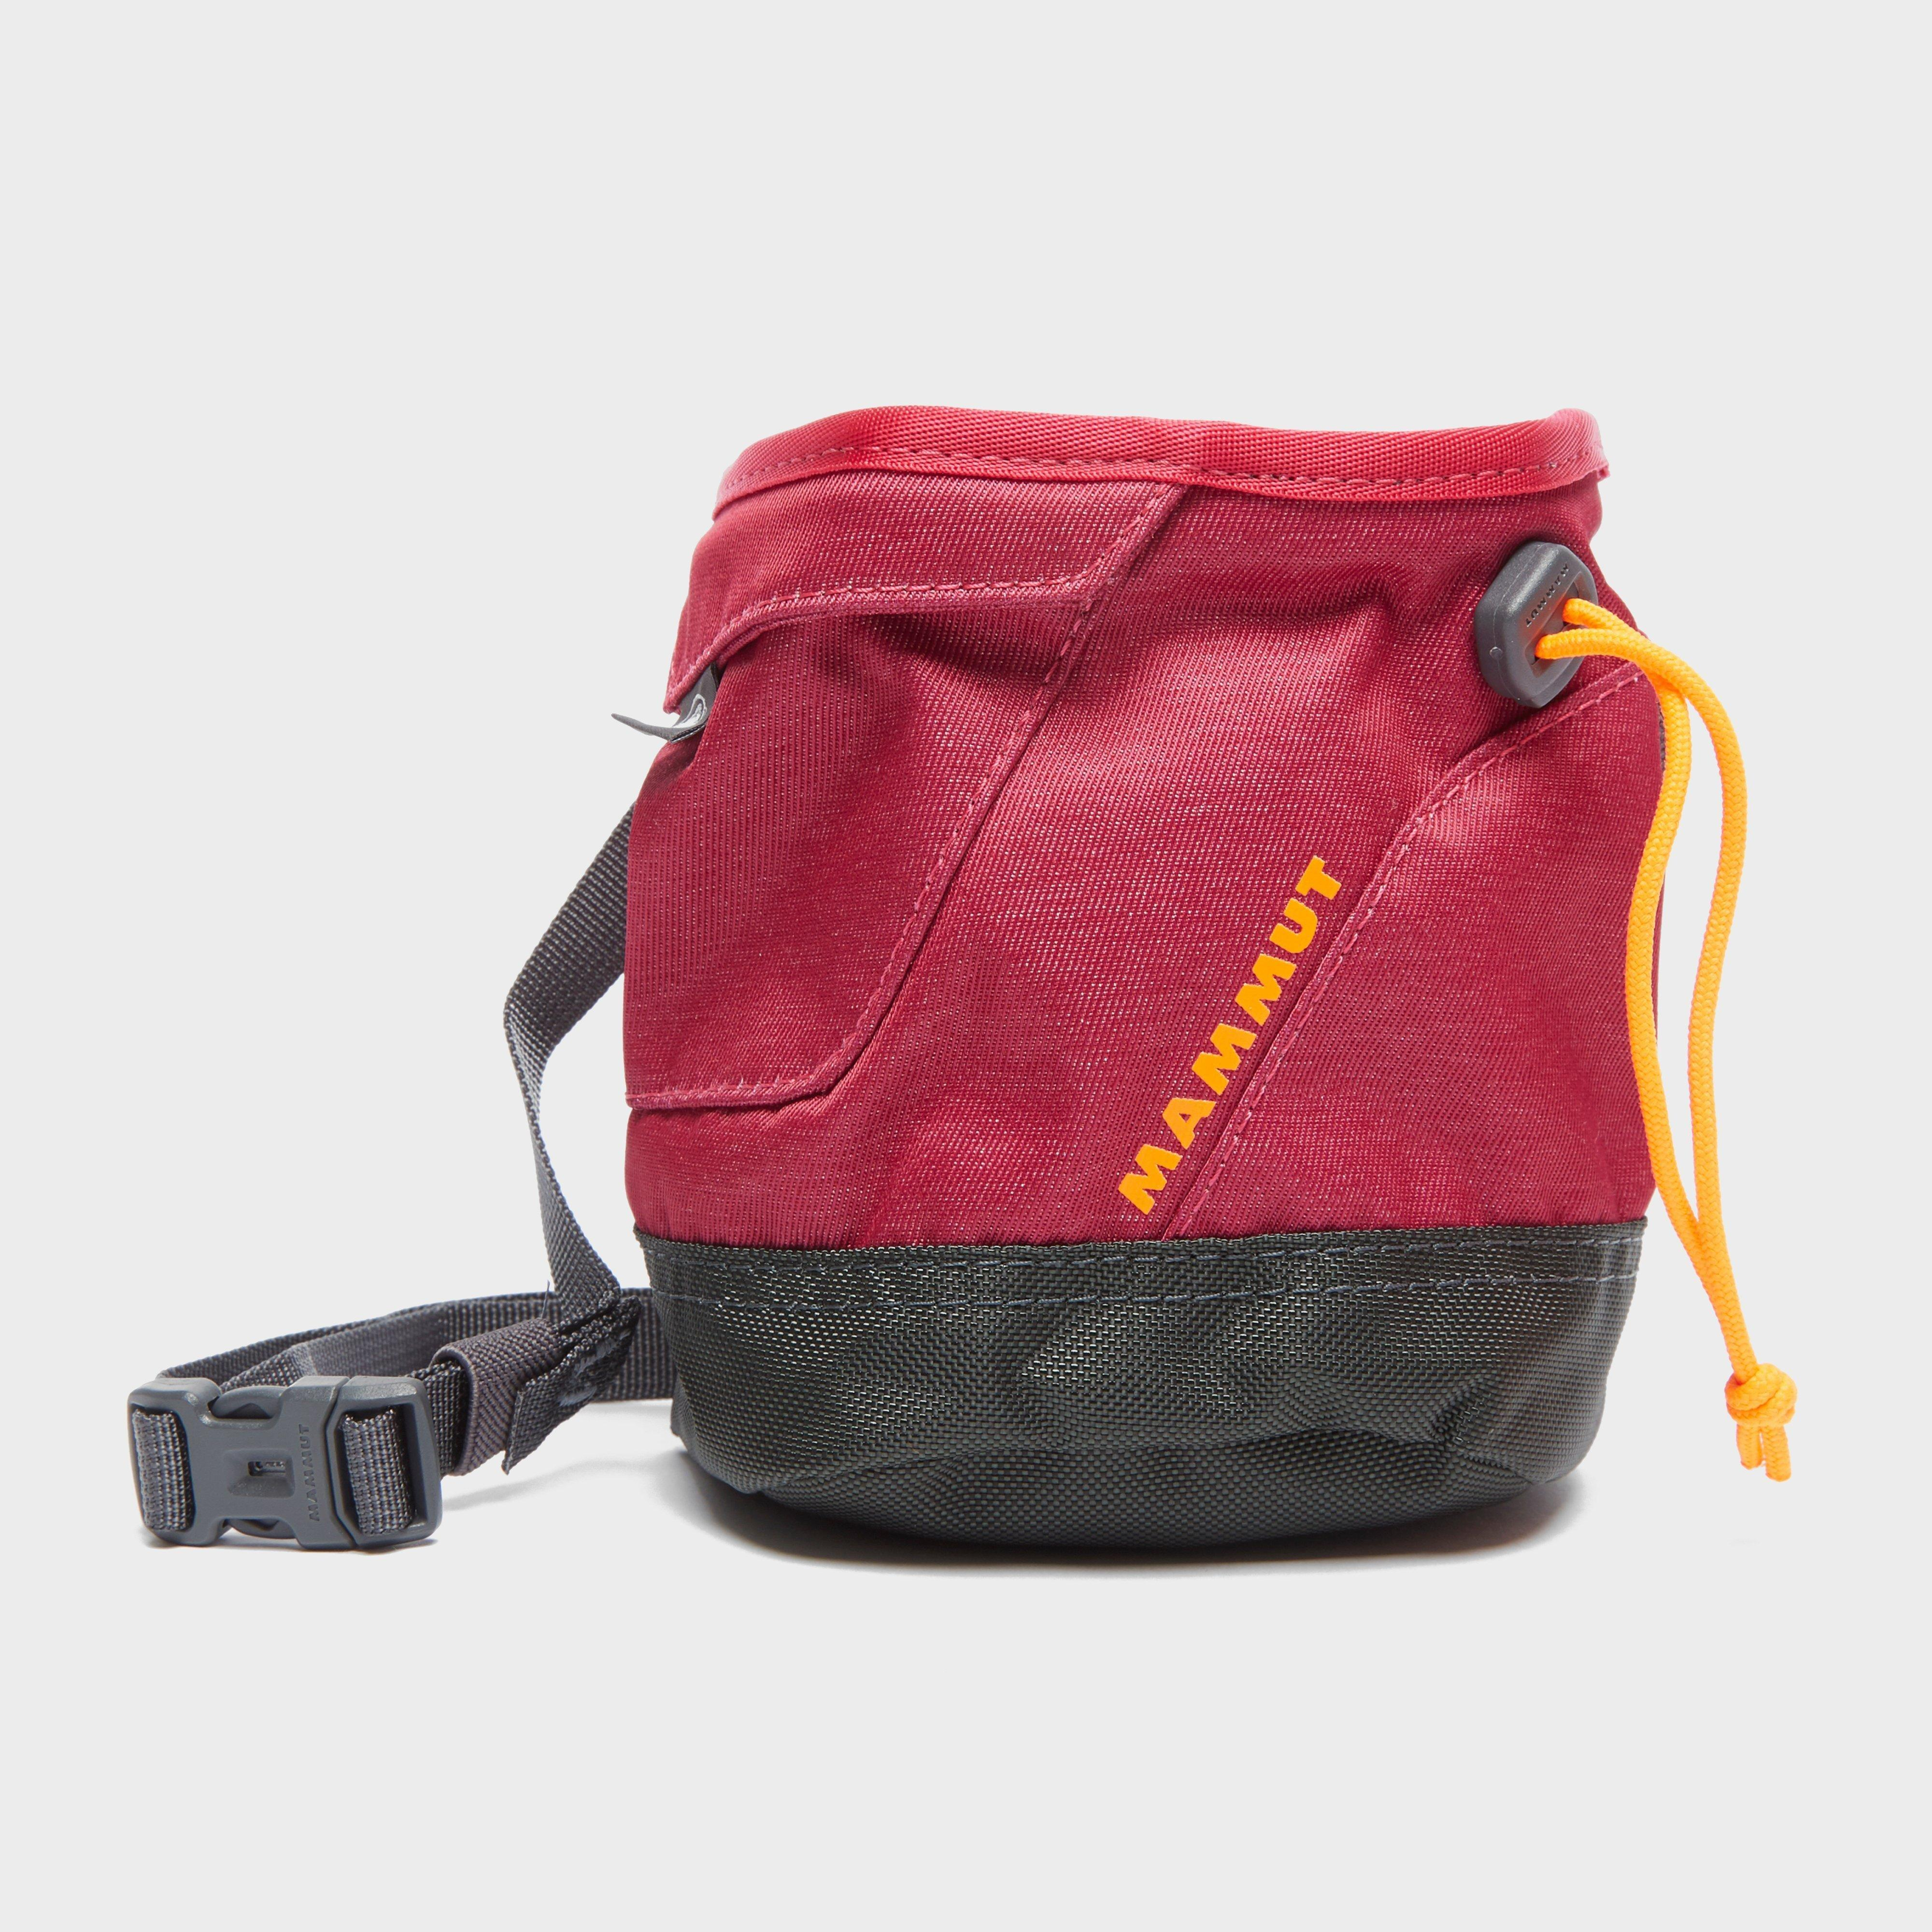 Mammut Ophir Chalk Bag - Red/red  Red/red